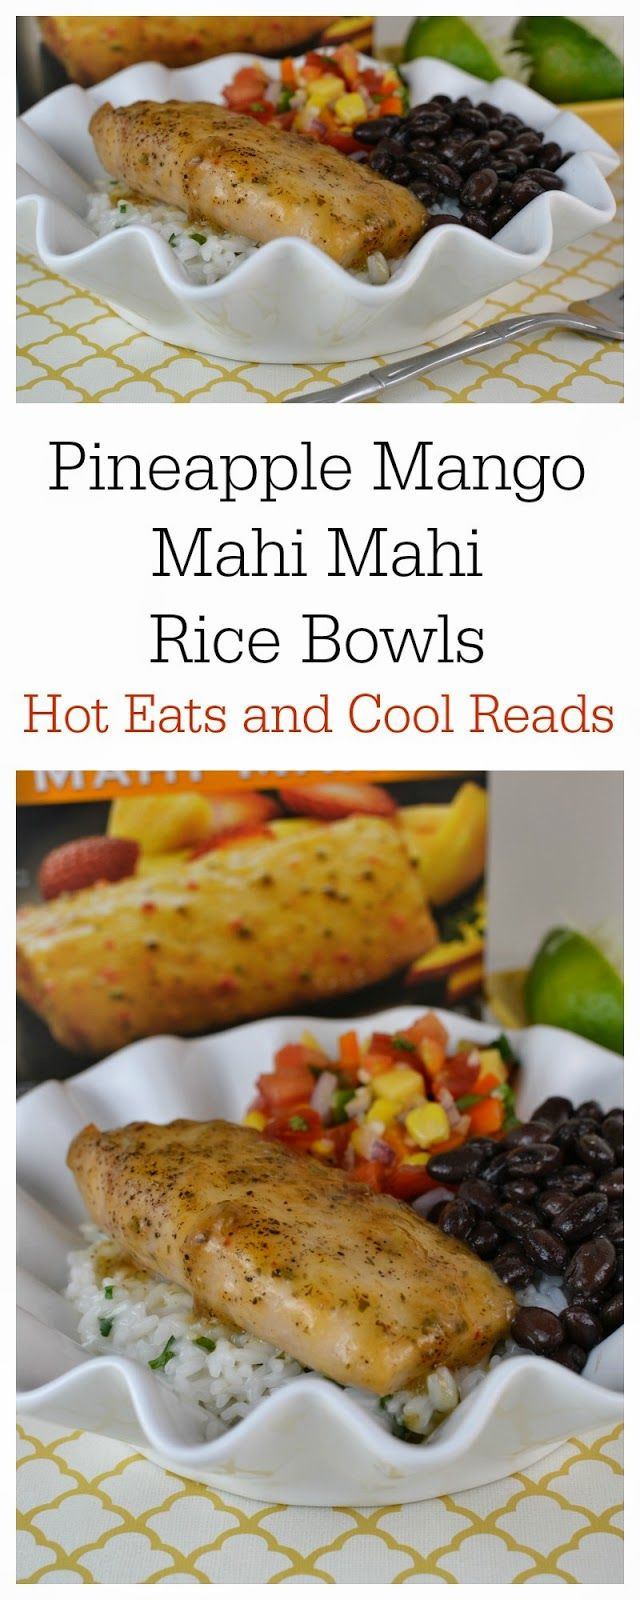 Make your own restaurant style rice bowls at home! Pineapple Mango Mahi Mahi Cilantro Lime Rice Bowls with Fresh Mango Salsa and Black Beans from Hot Eats and Cool Reads!